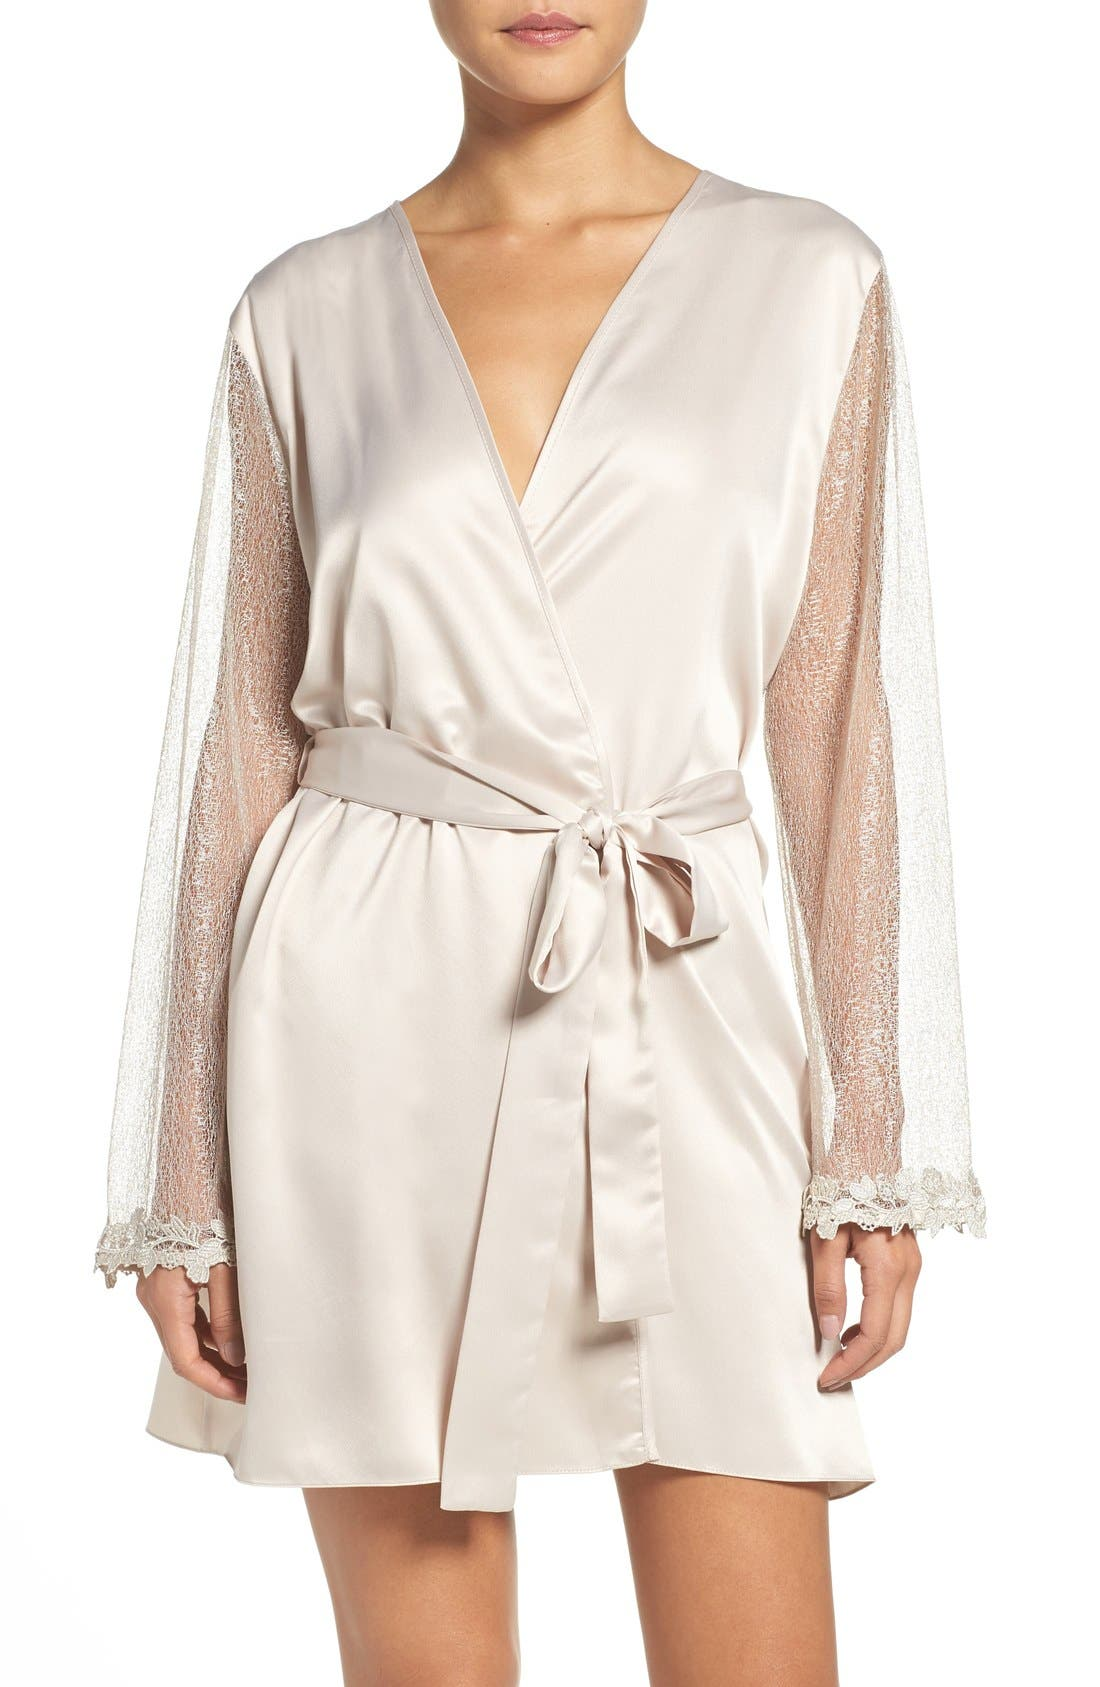 FLORA NIKROOZ Showstopper Charmeuse Cover-Up Robe in Champagne